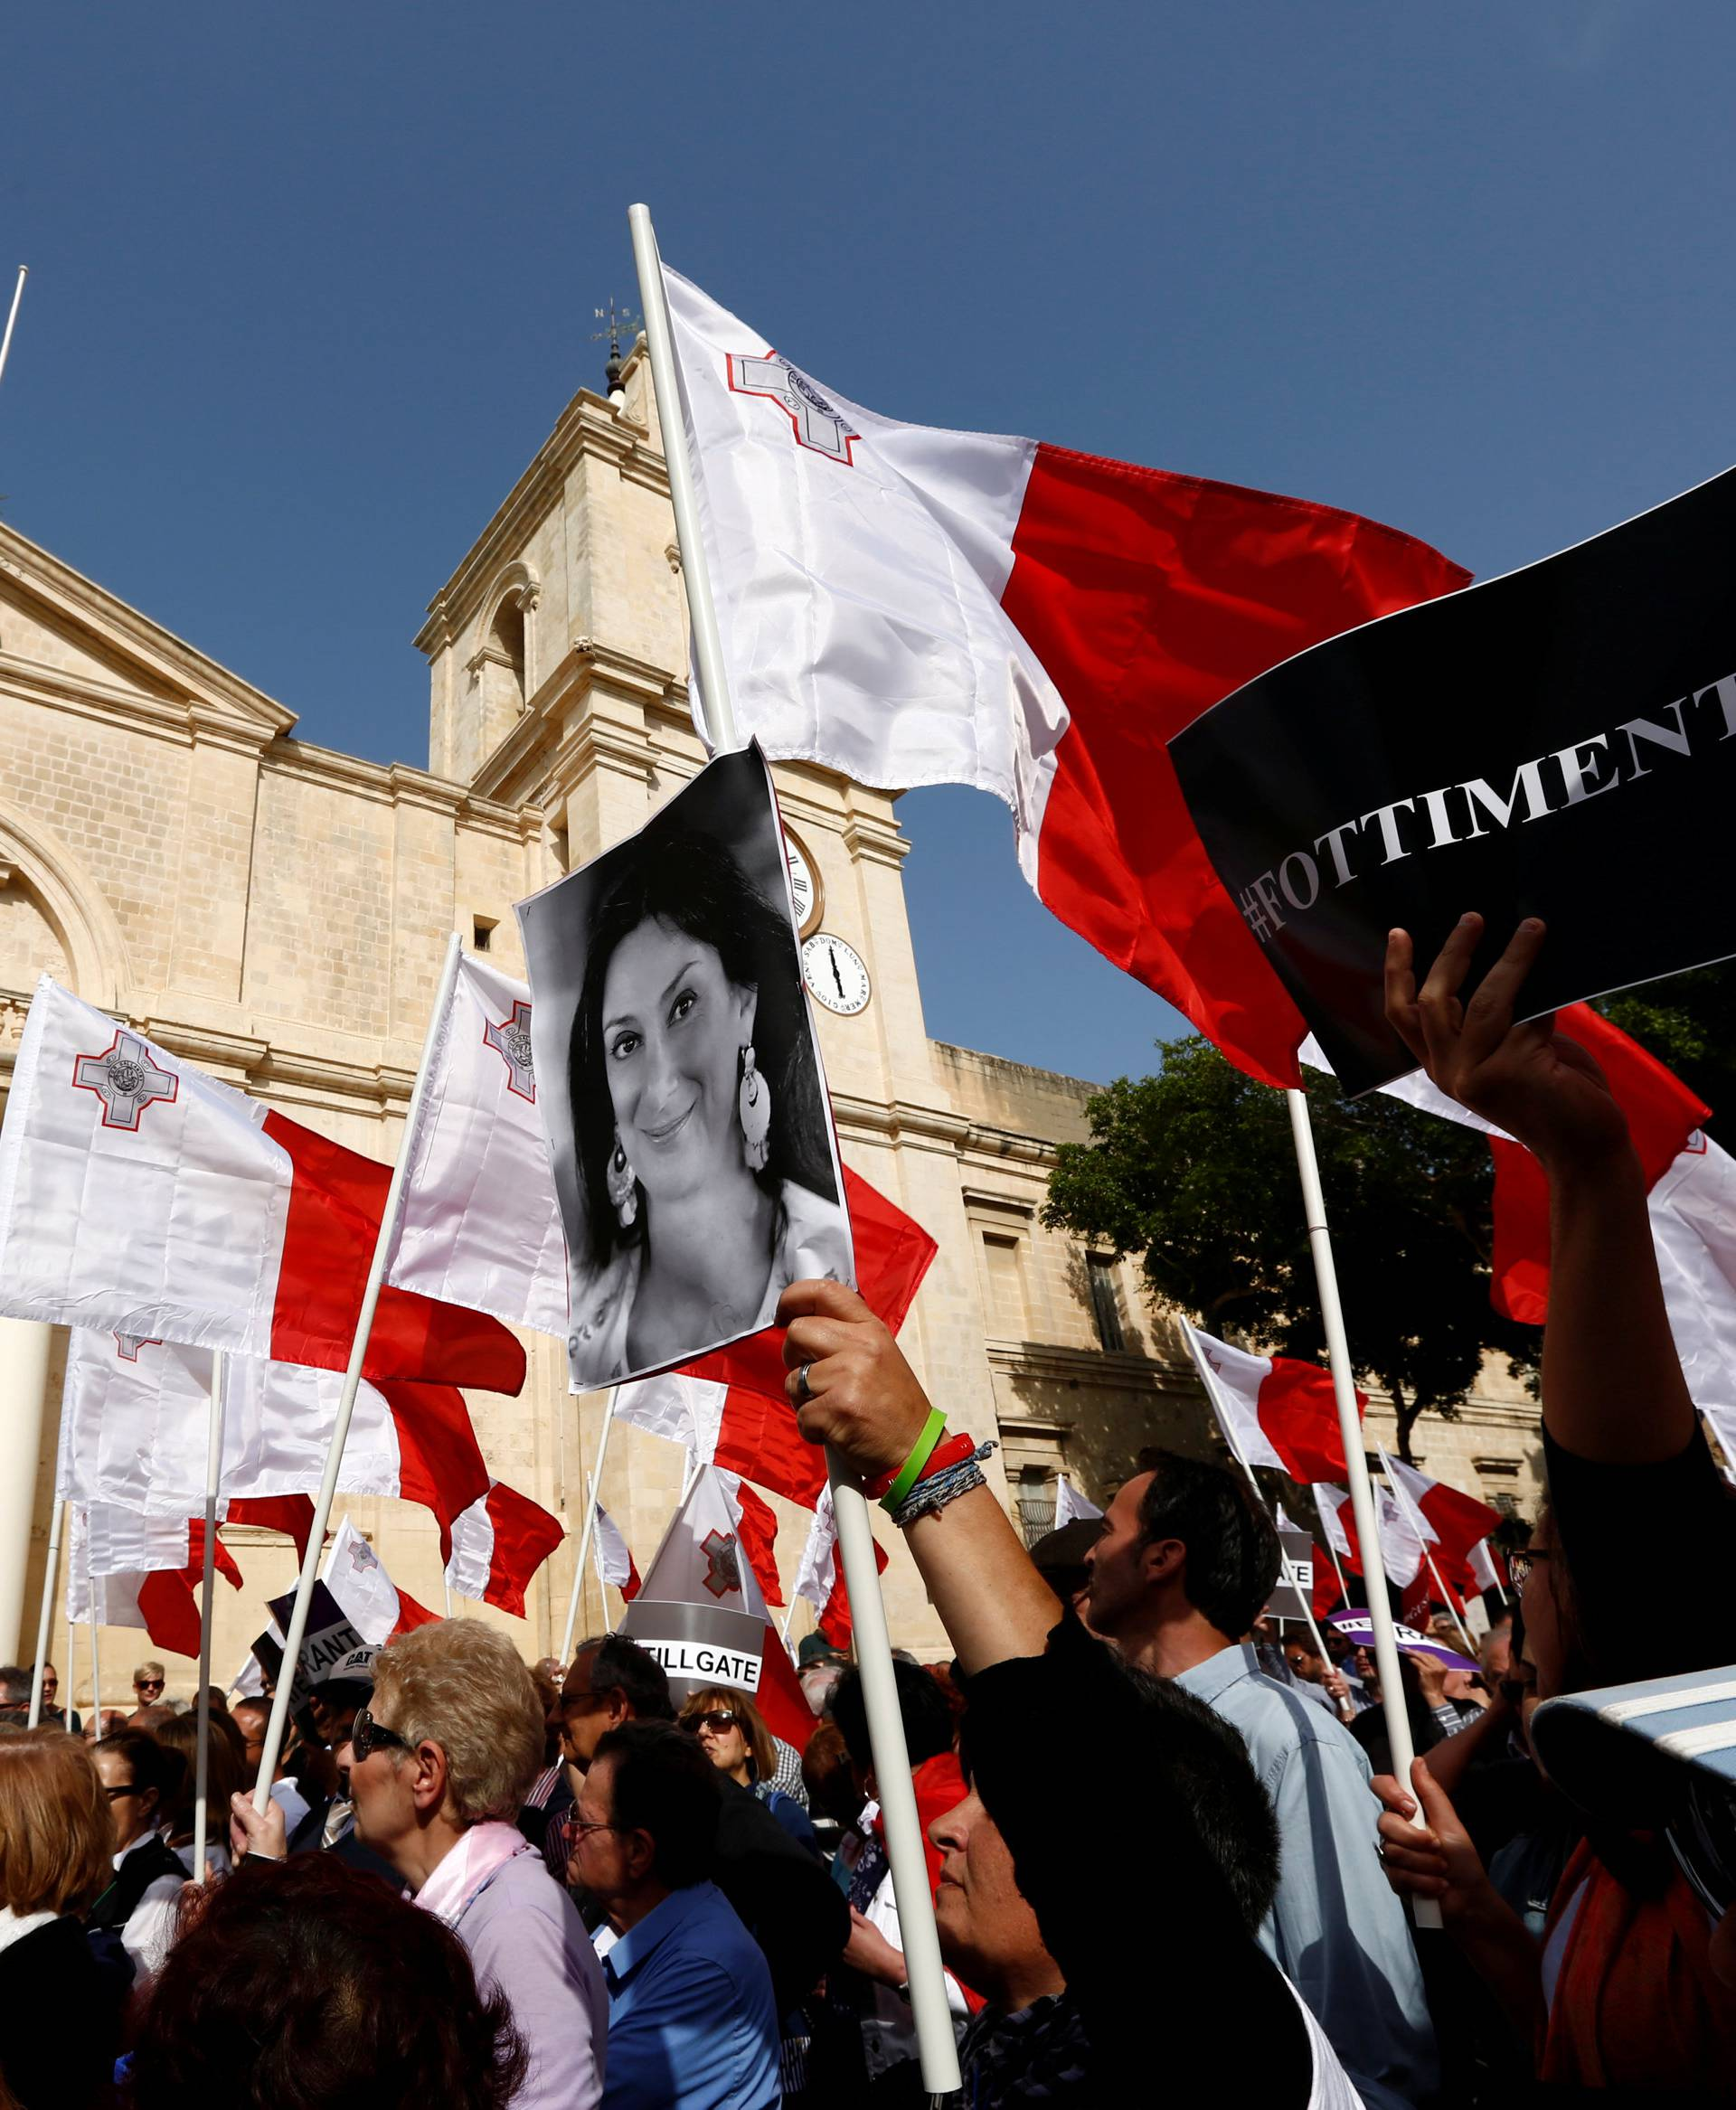 A demonstrator carries a photo of assassinated anti-corruption journalist Daphne Caruana Galizia during a protest against government corruption in light of the revelations in the Daphne Project, in Valletta